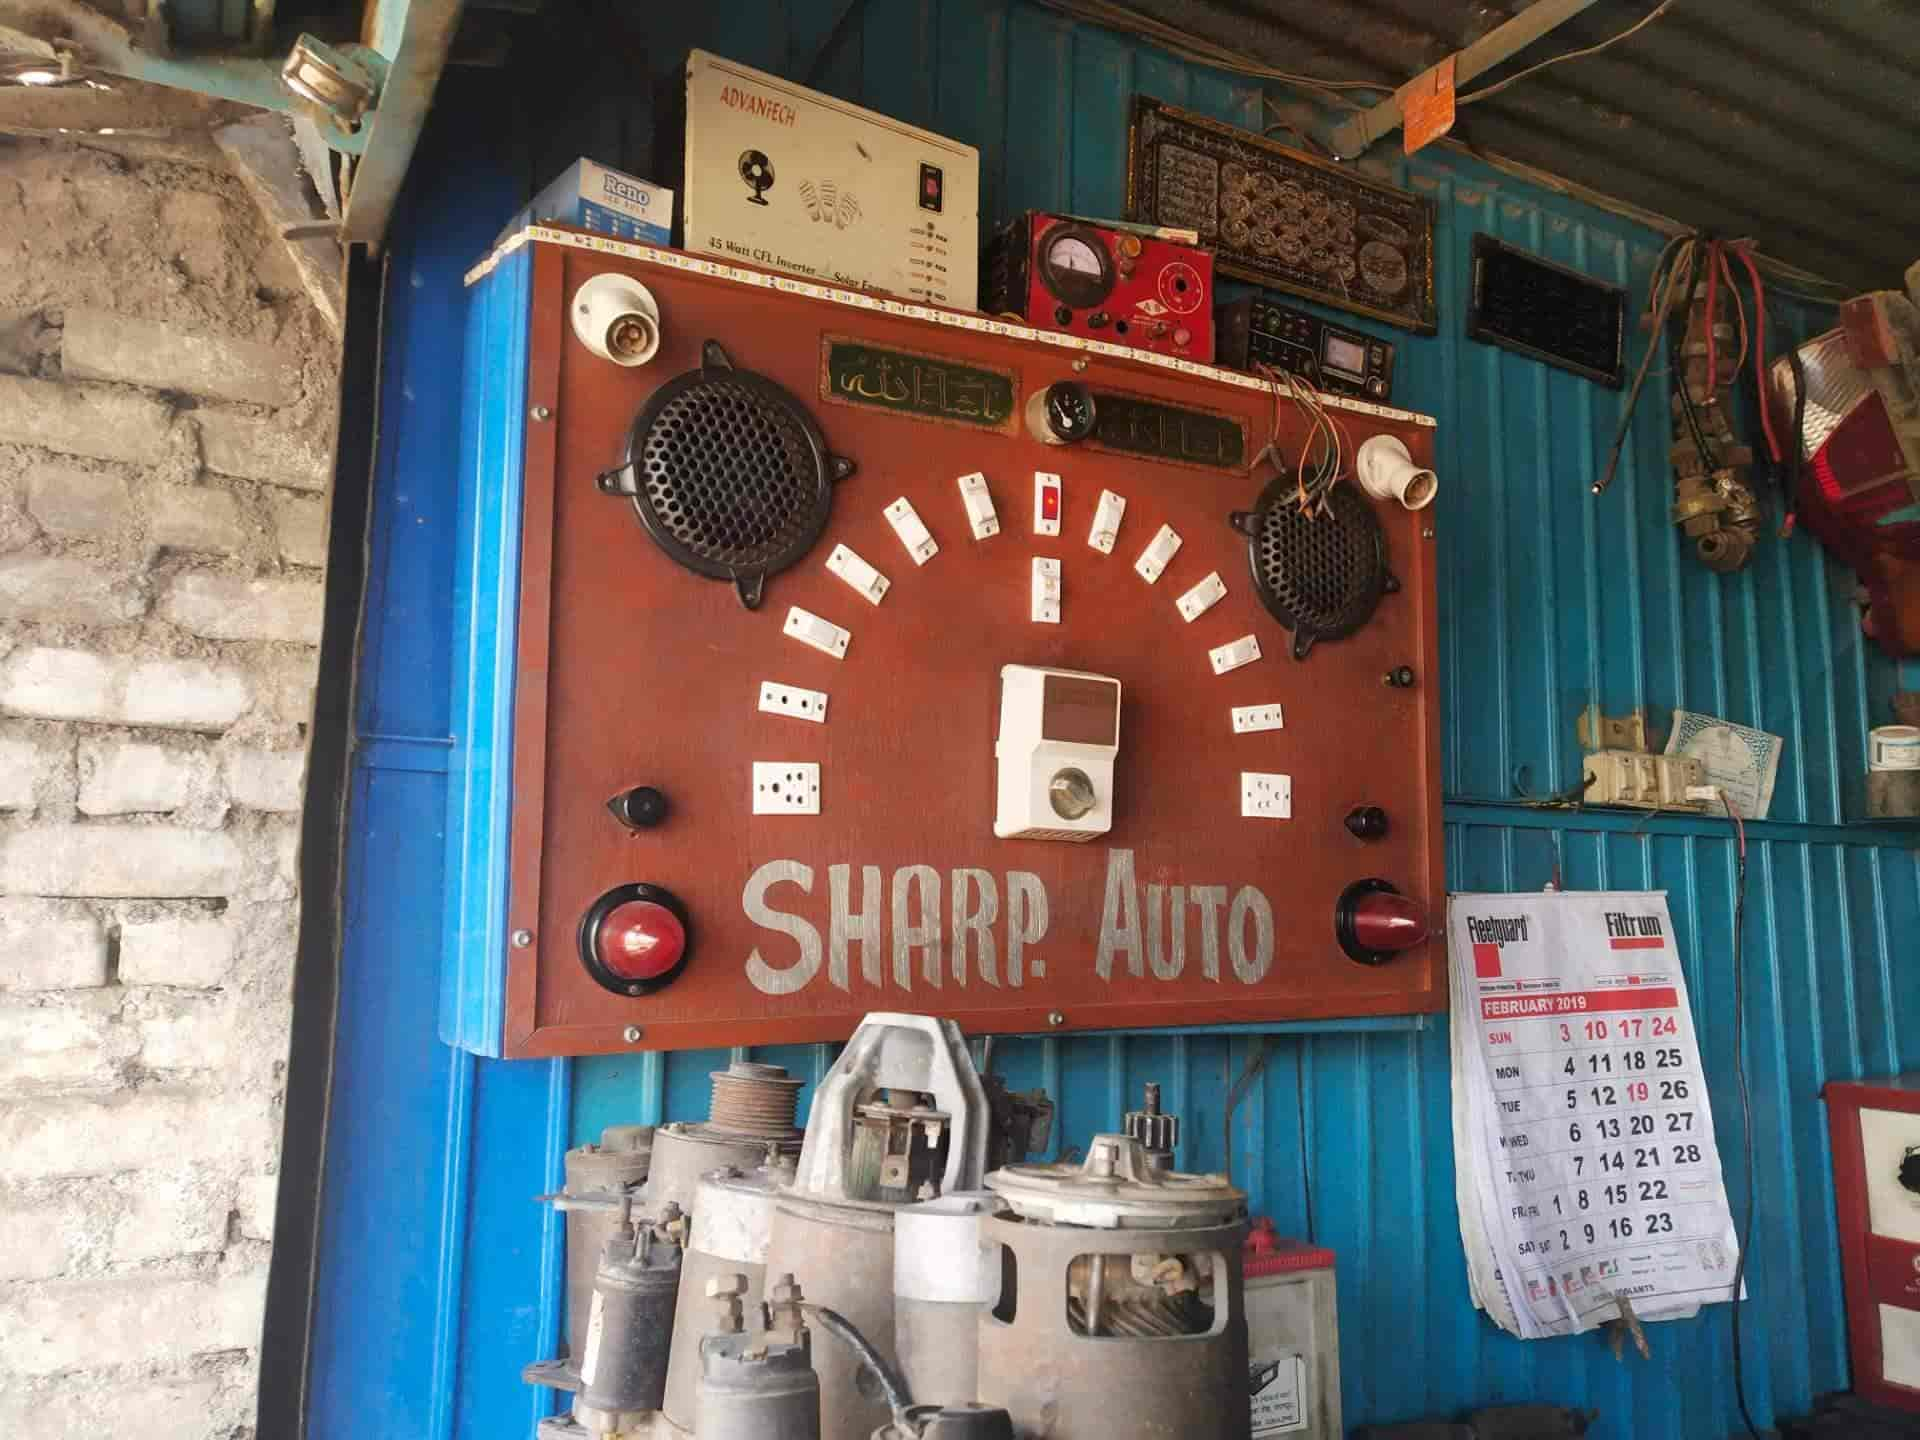 Sas Bad 24 Sharp Auto Electrician Works Photos Station Road Aurangabad